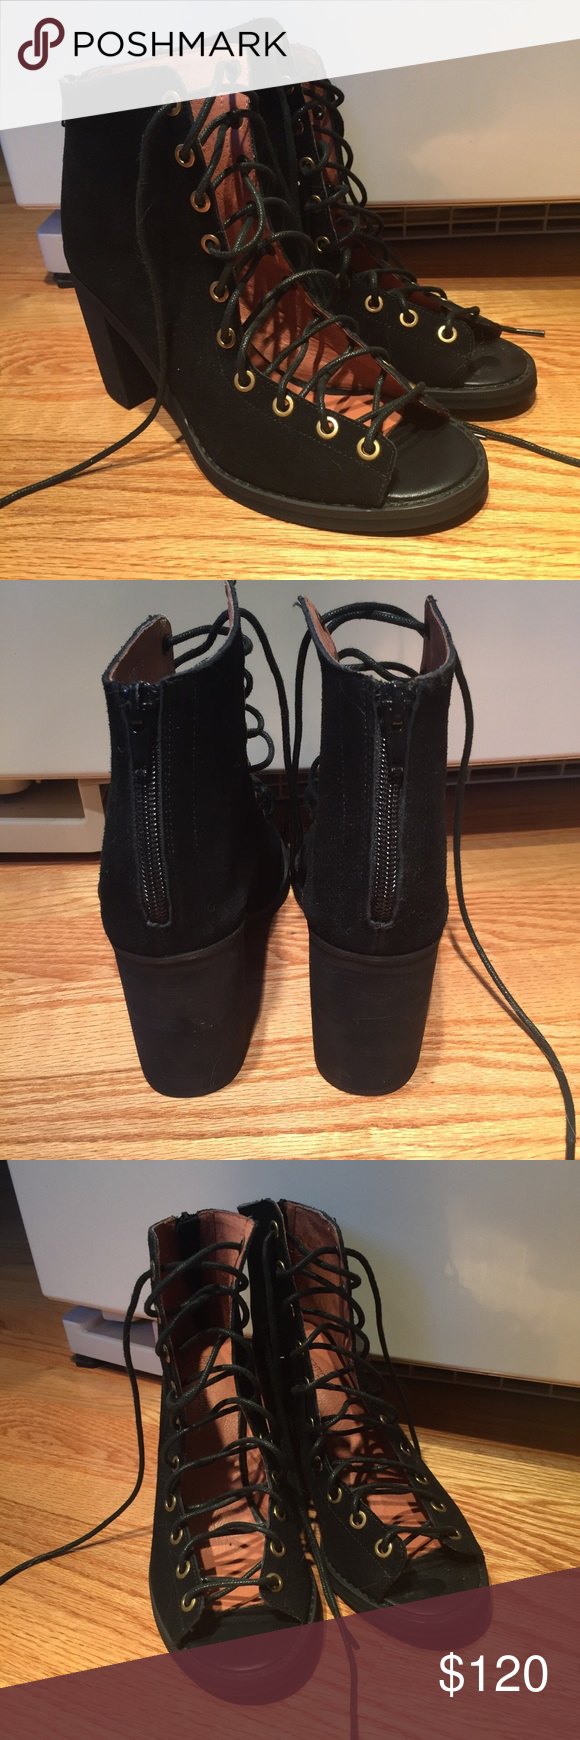 Jeffrey Campbell lace up heels Jeffrey Campbell black suede heels with zipper at back, in perfect condition, never worn! Jeffrey Campbell Shoes Heels